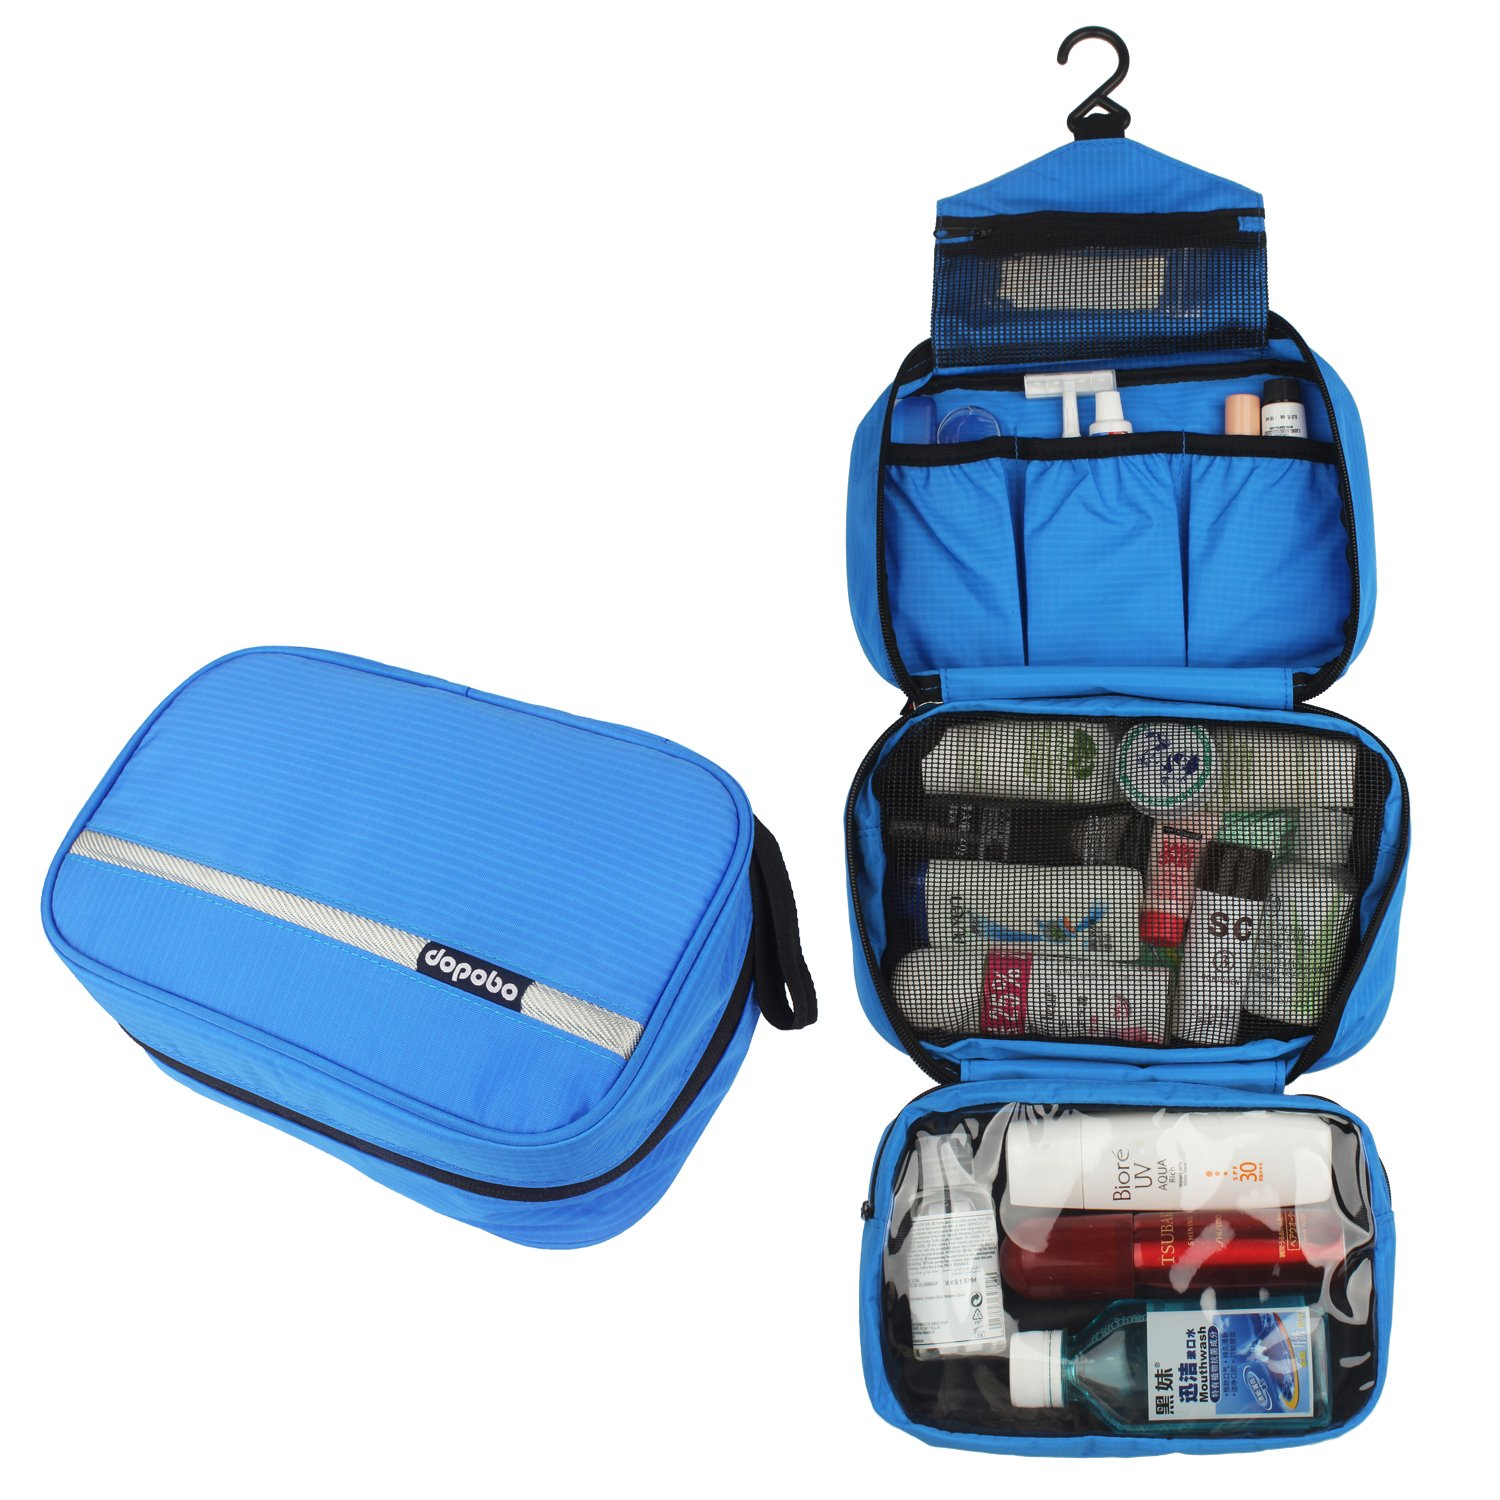 Dopobo Travelling Toiletry Bag Portable Hanging Water-Resistant Wash Bag for Travelling, Business Trip, Camping (blue)